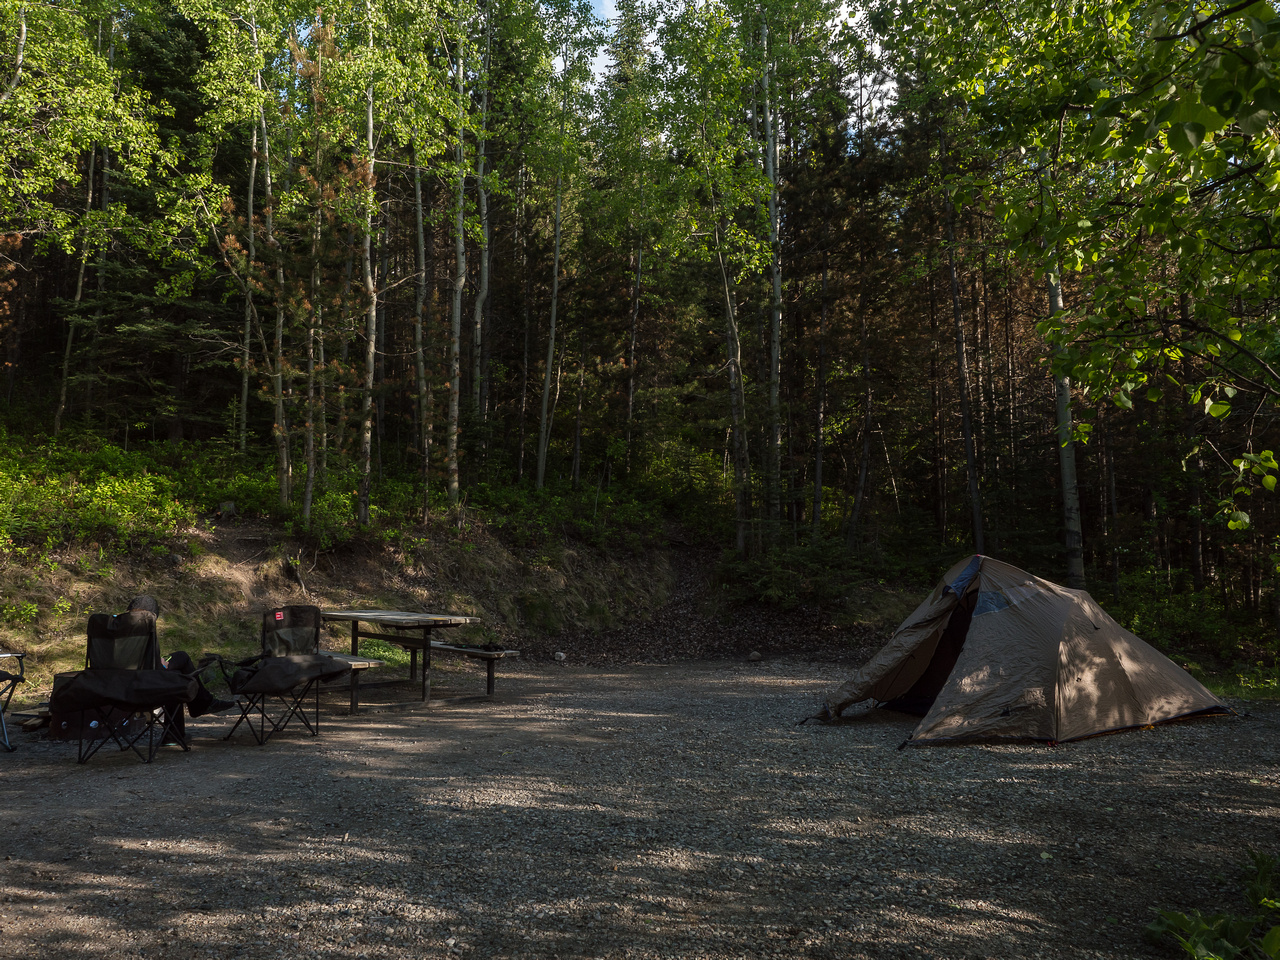 A great campsite at Beaver Mines Lake.